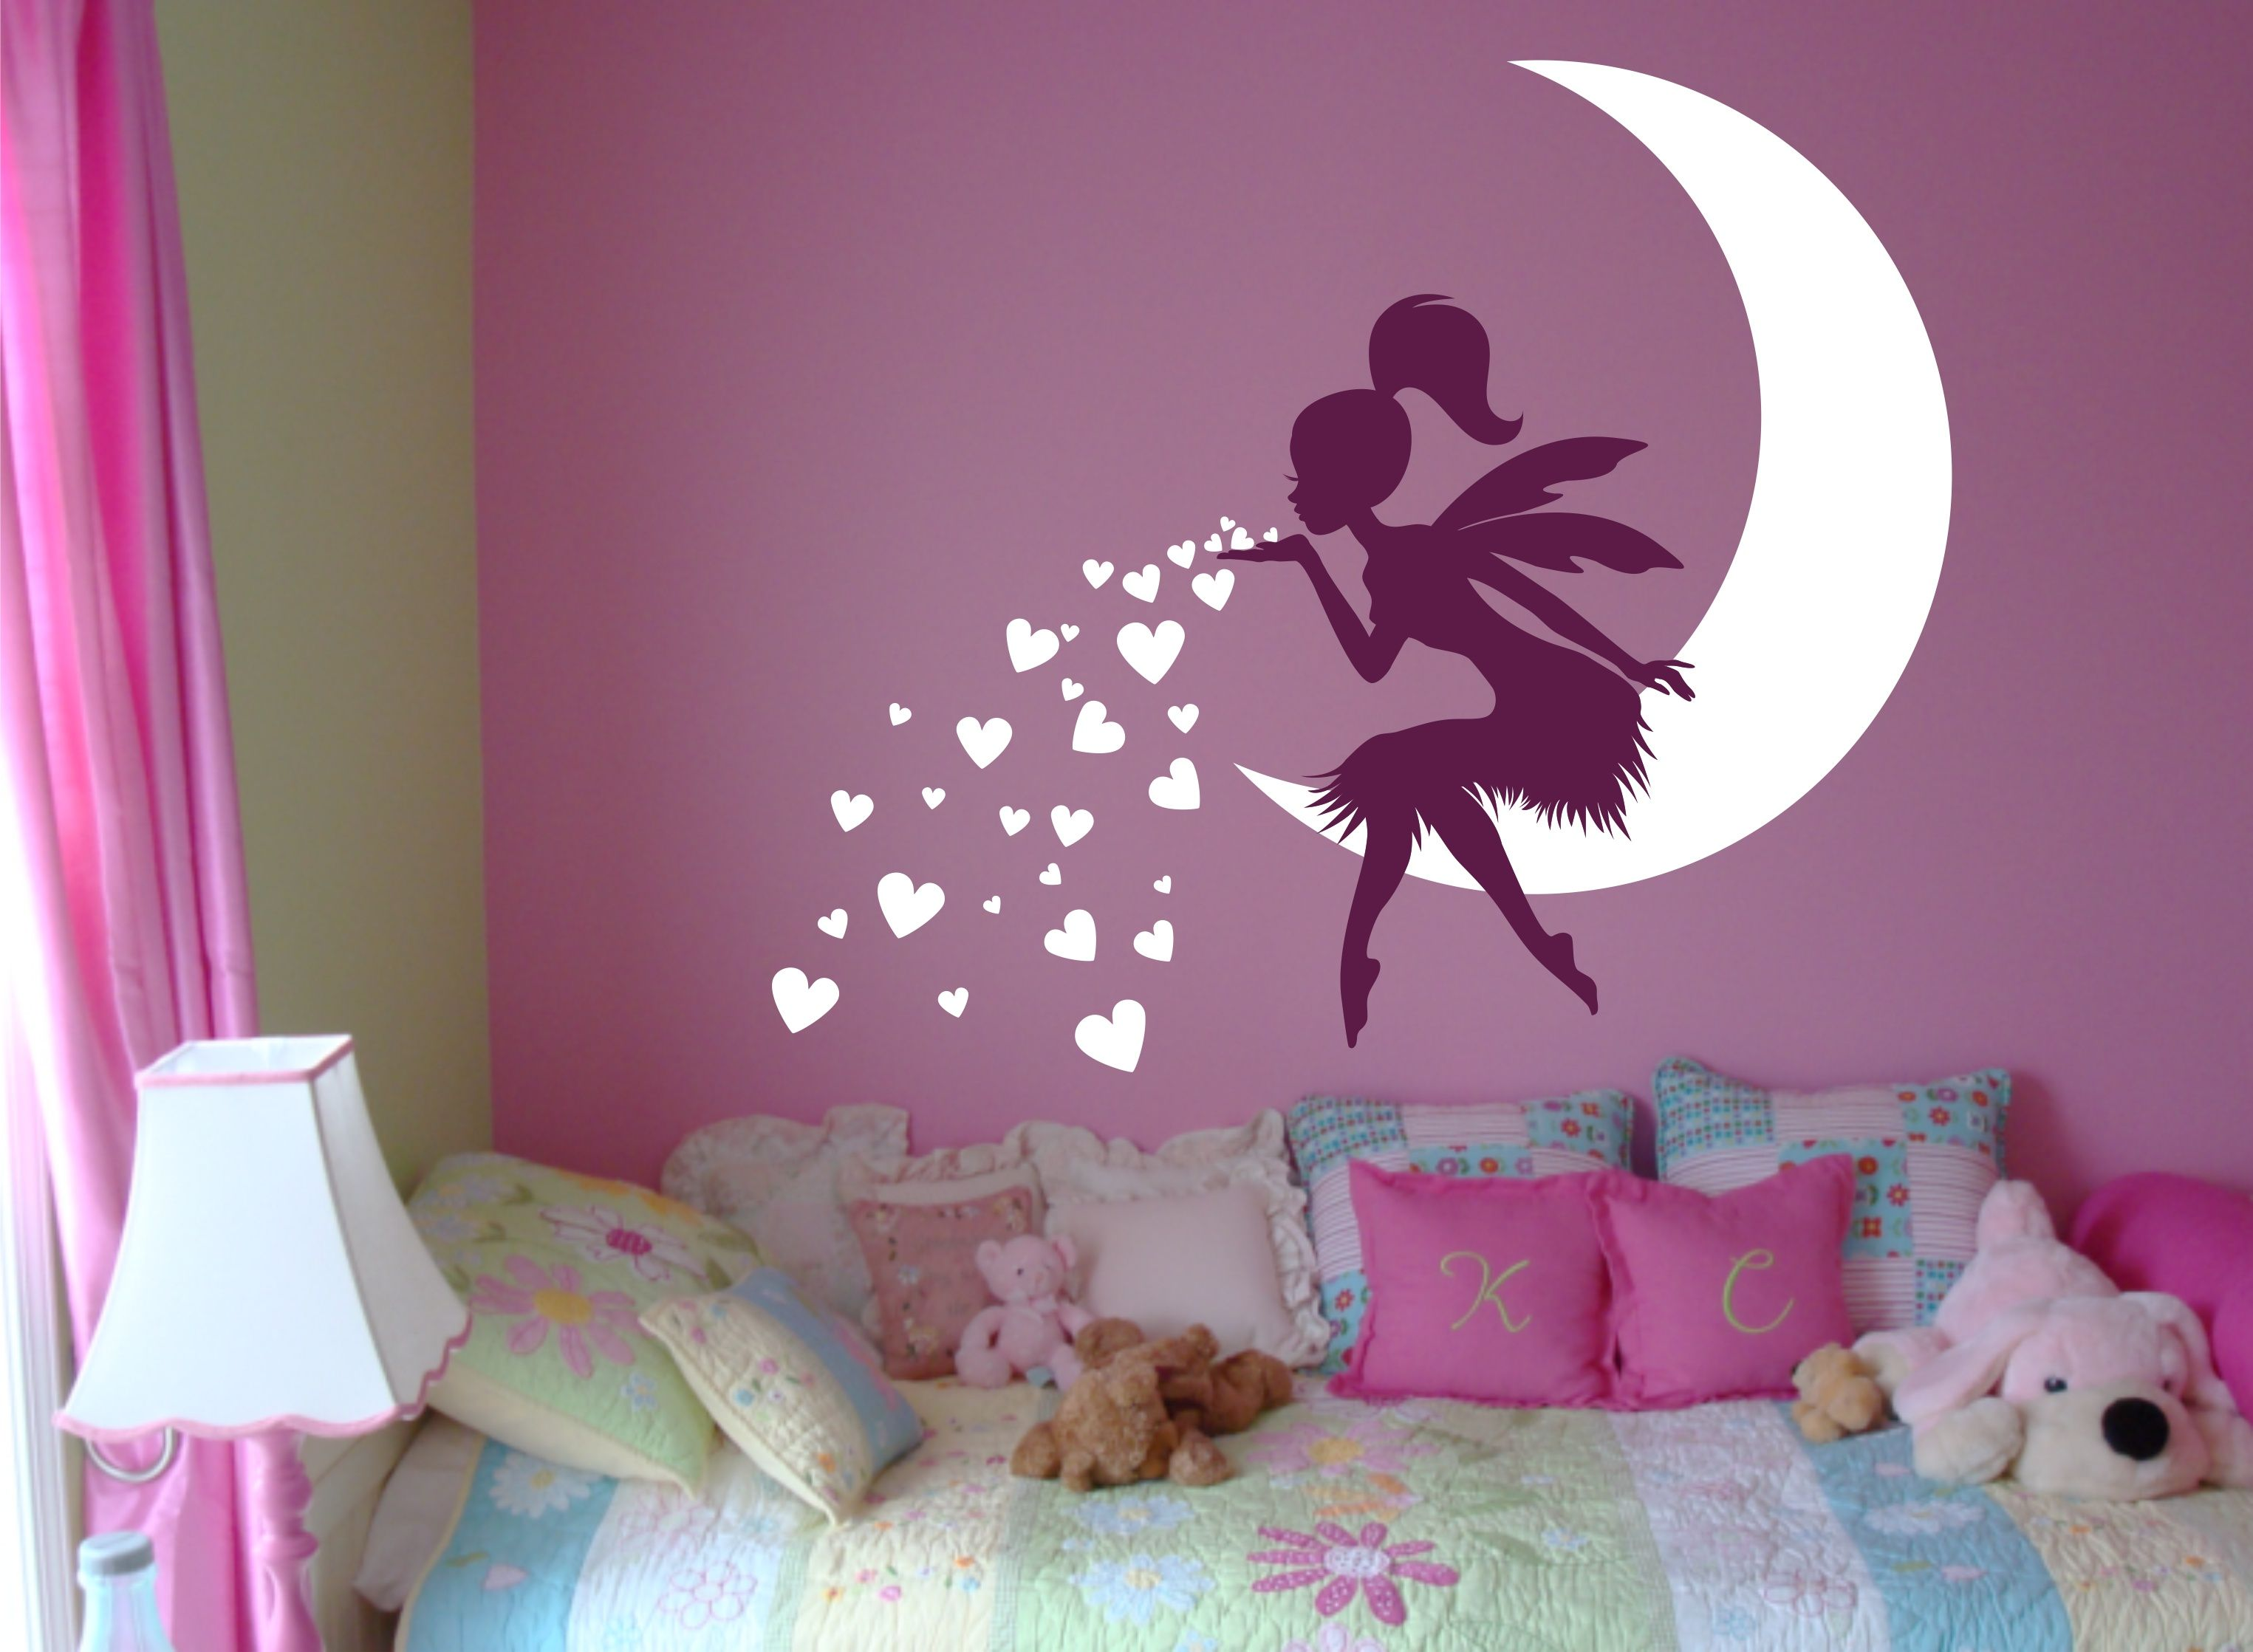 FAIRY Wall Decal Blowing Kisses With Hearts   Vinyl Fairy Wall Art For  Nursery From WallCrafters